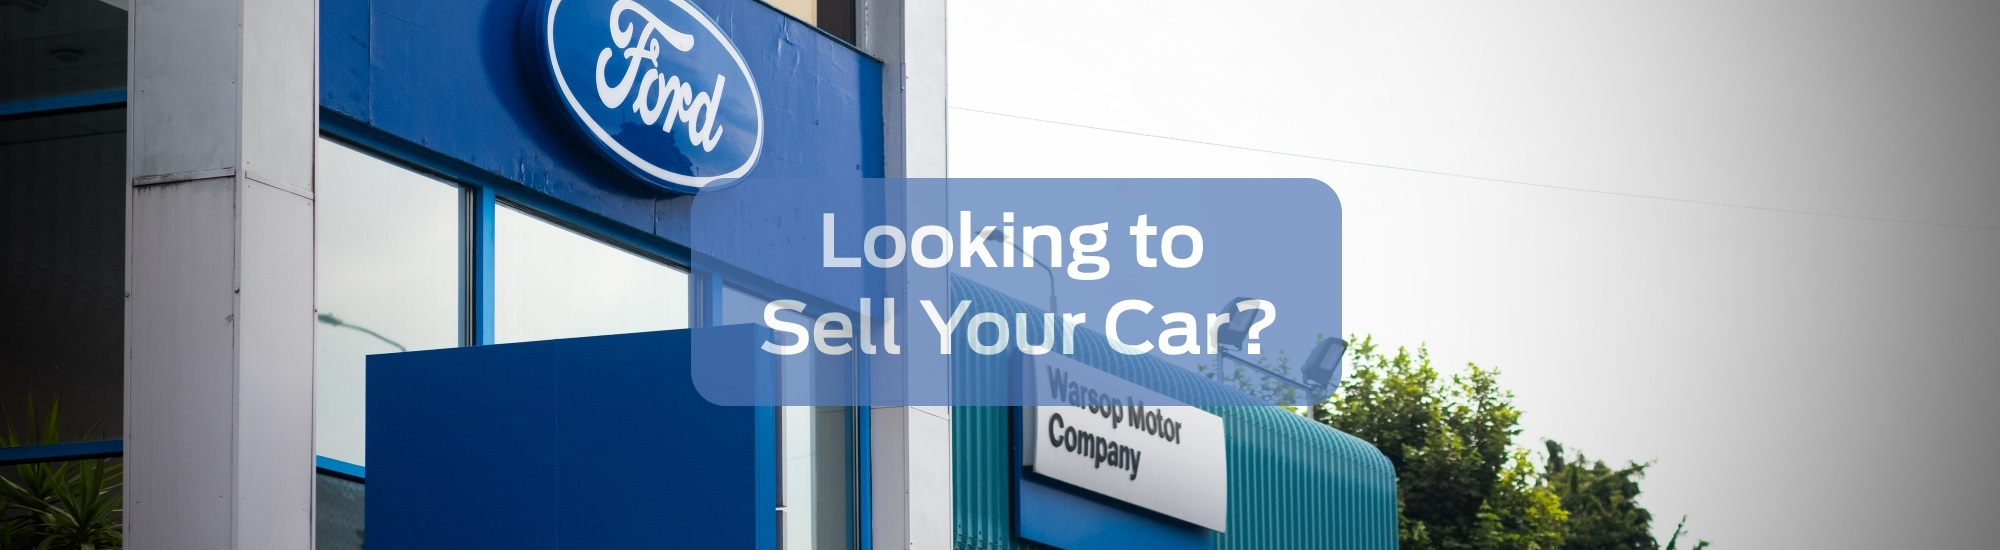 Looking to sell you car?